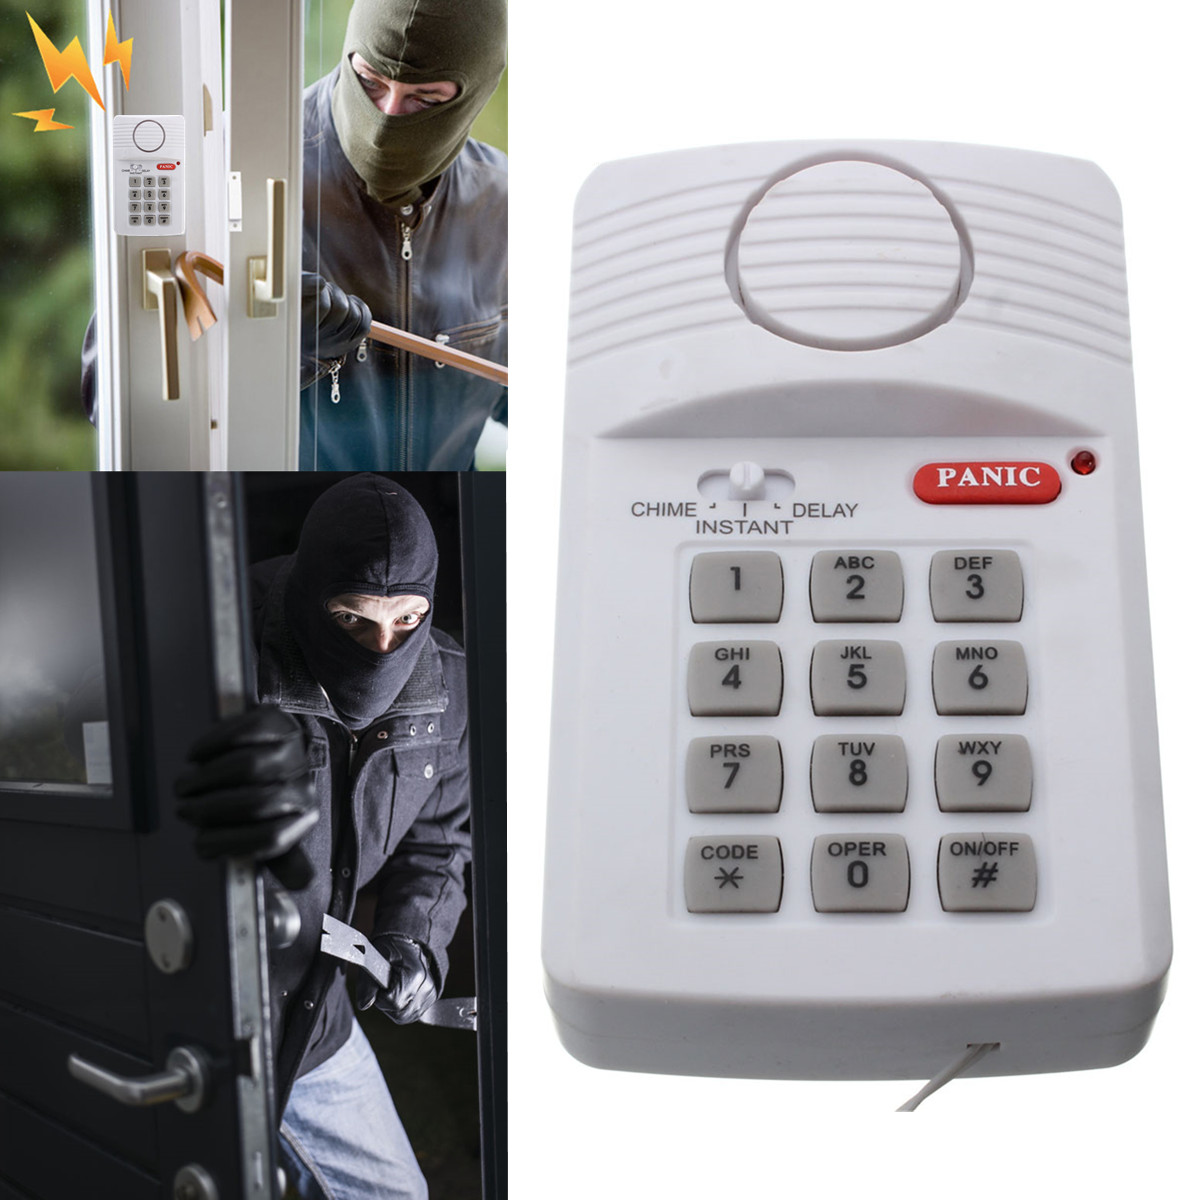 High Quality Security Keypad Door Alarm System With Panic Button For Home Shed Garage Caravan Hot Sale